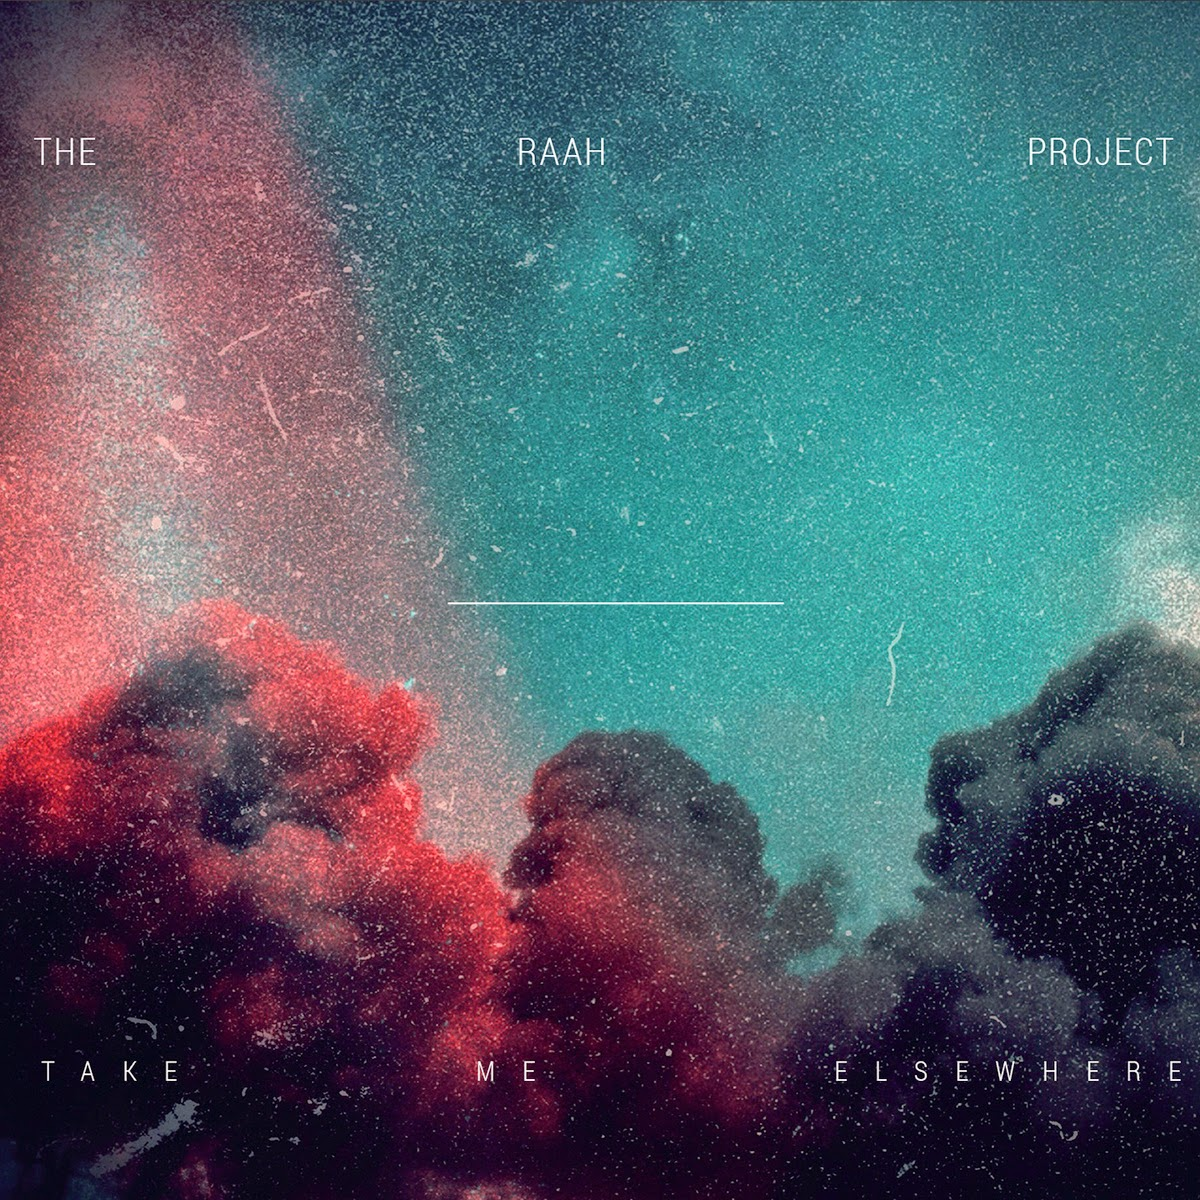 http://www.d4am.net/2015/03/the-raah-project-take-me-elsewhere.html